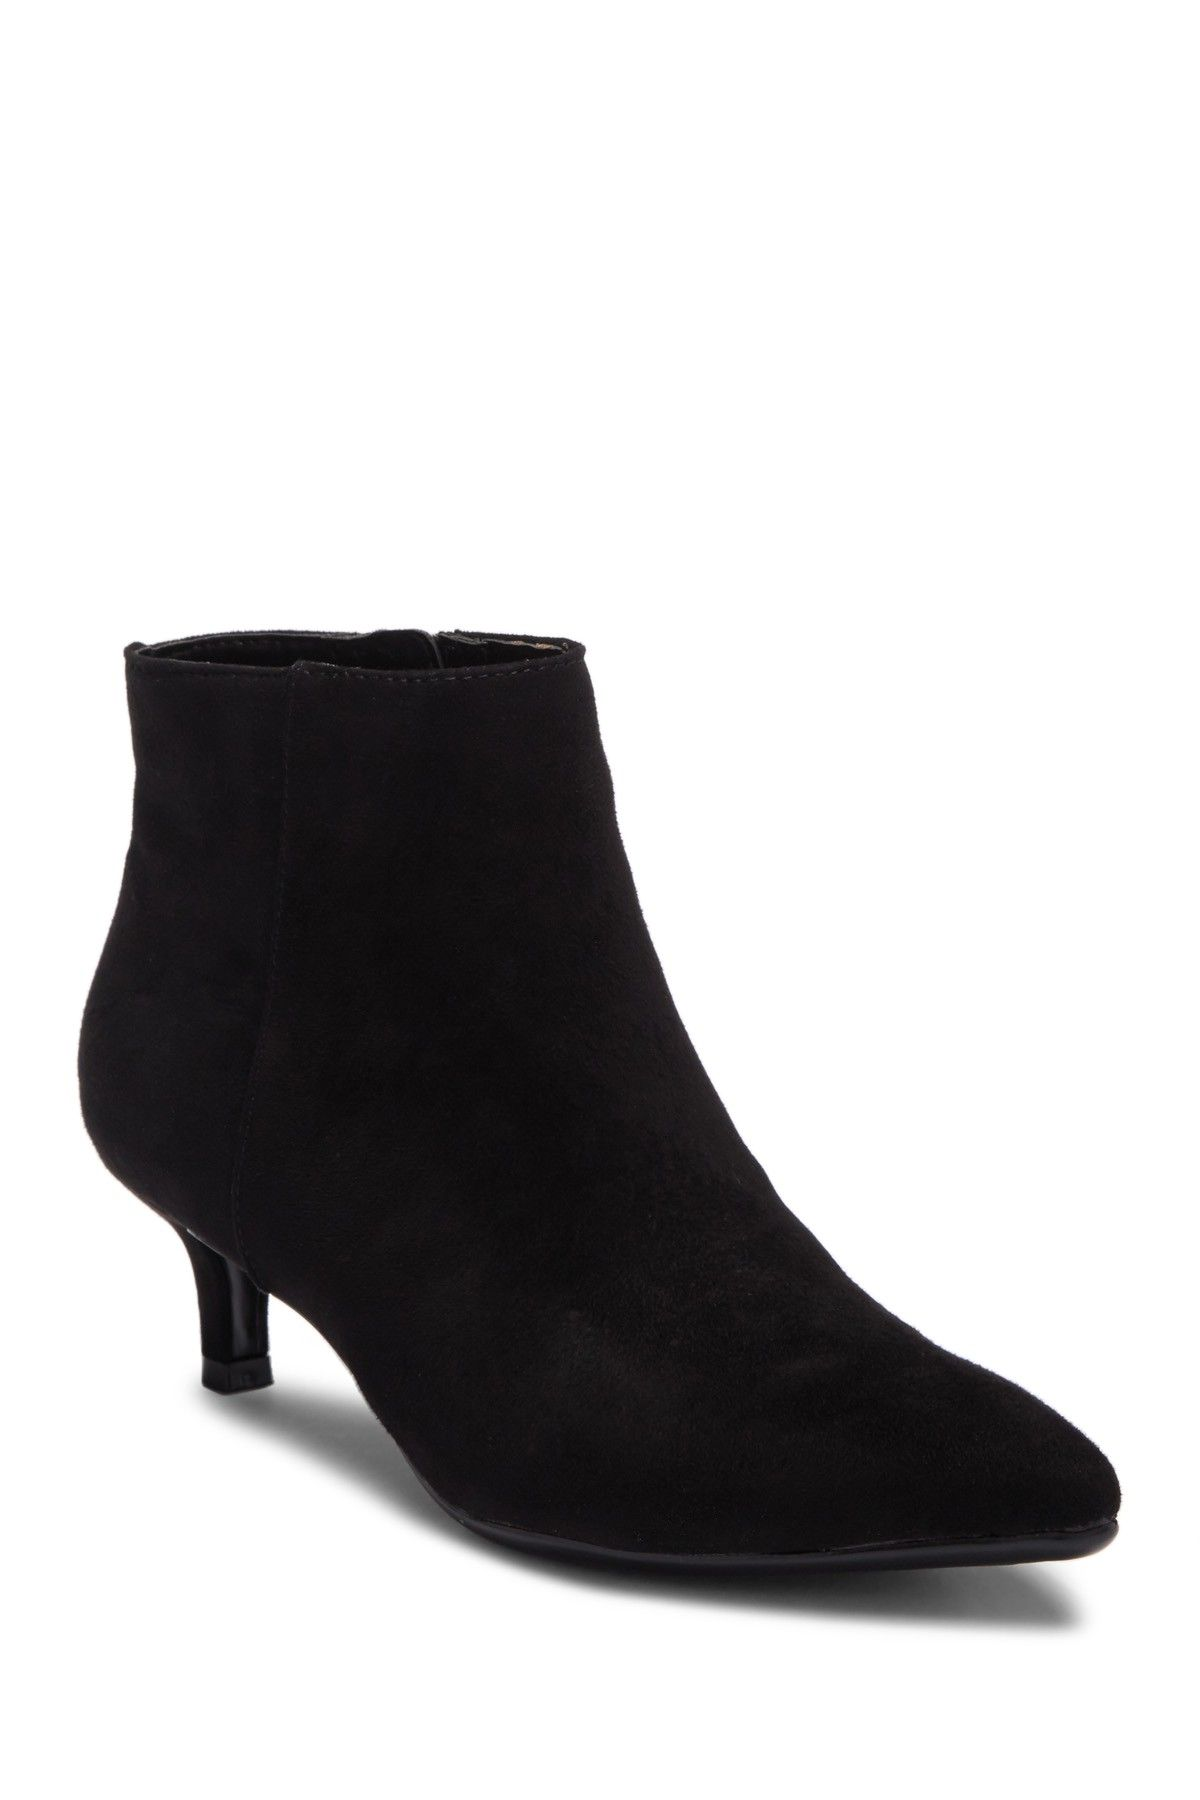 a2eb210970f Image of Naturalizer Giselle Kitten Heel Bootie - Wide Width Available